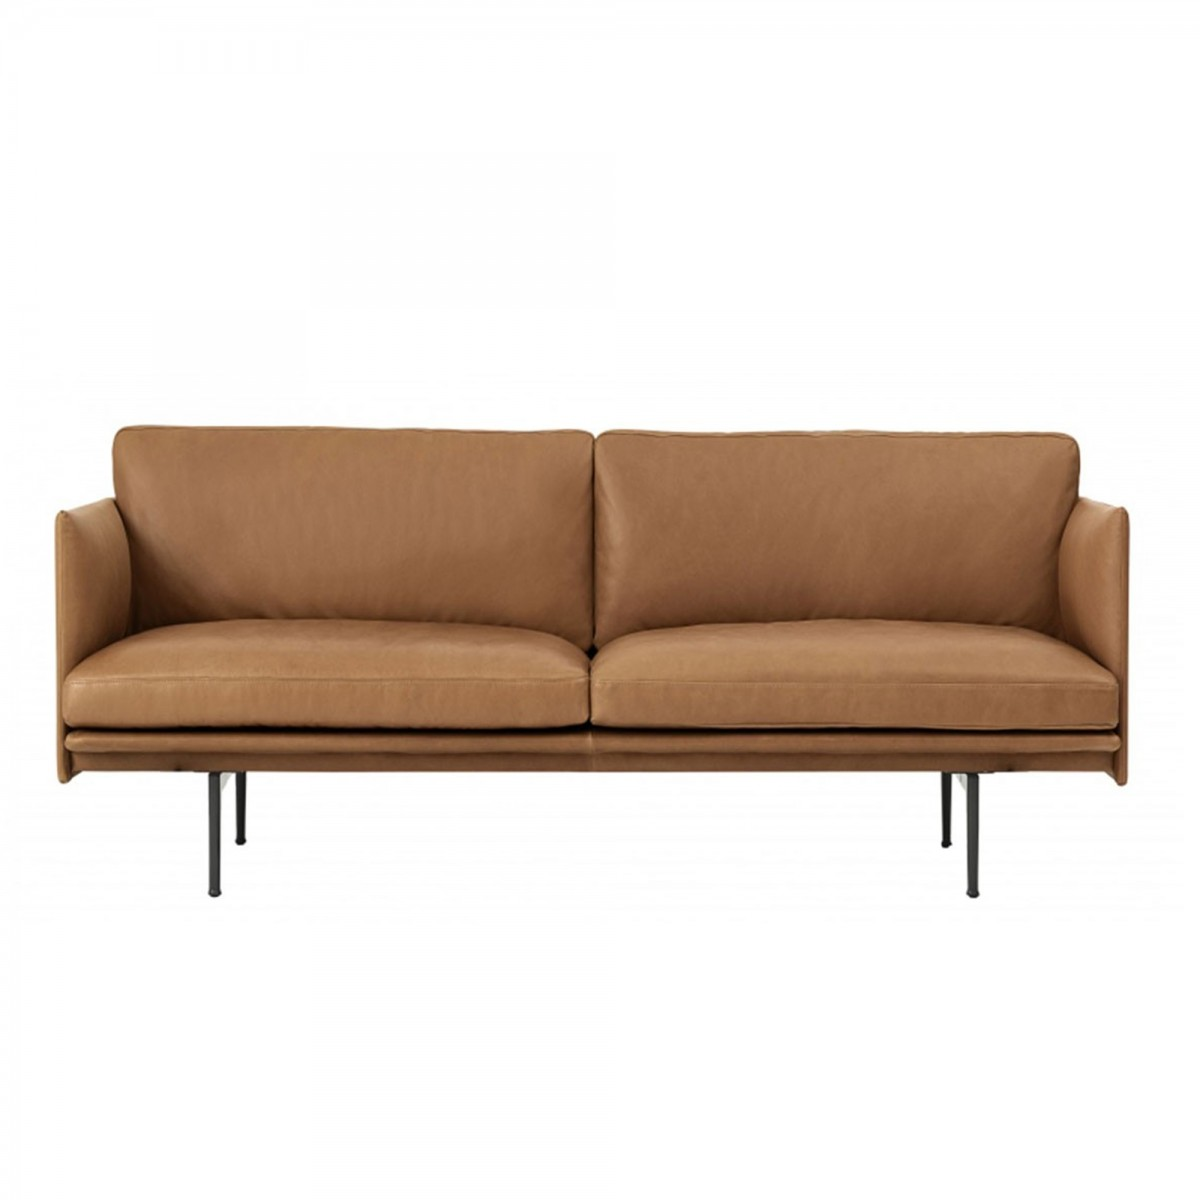 outline 2 seater sofa in leather muuto at colonel shop. Black Bedroom Furniture Sets. Home Design Ideas